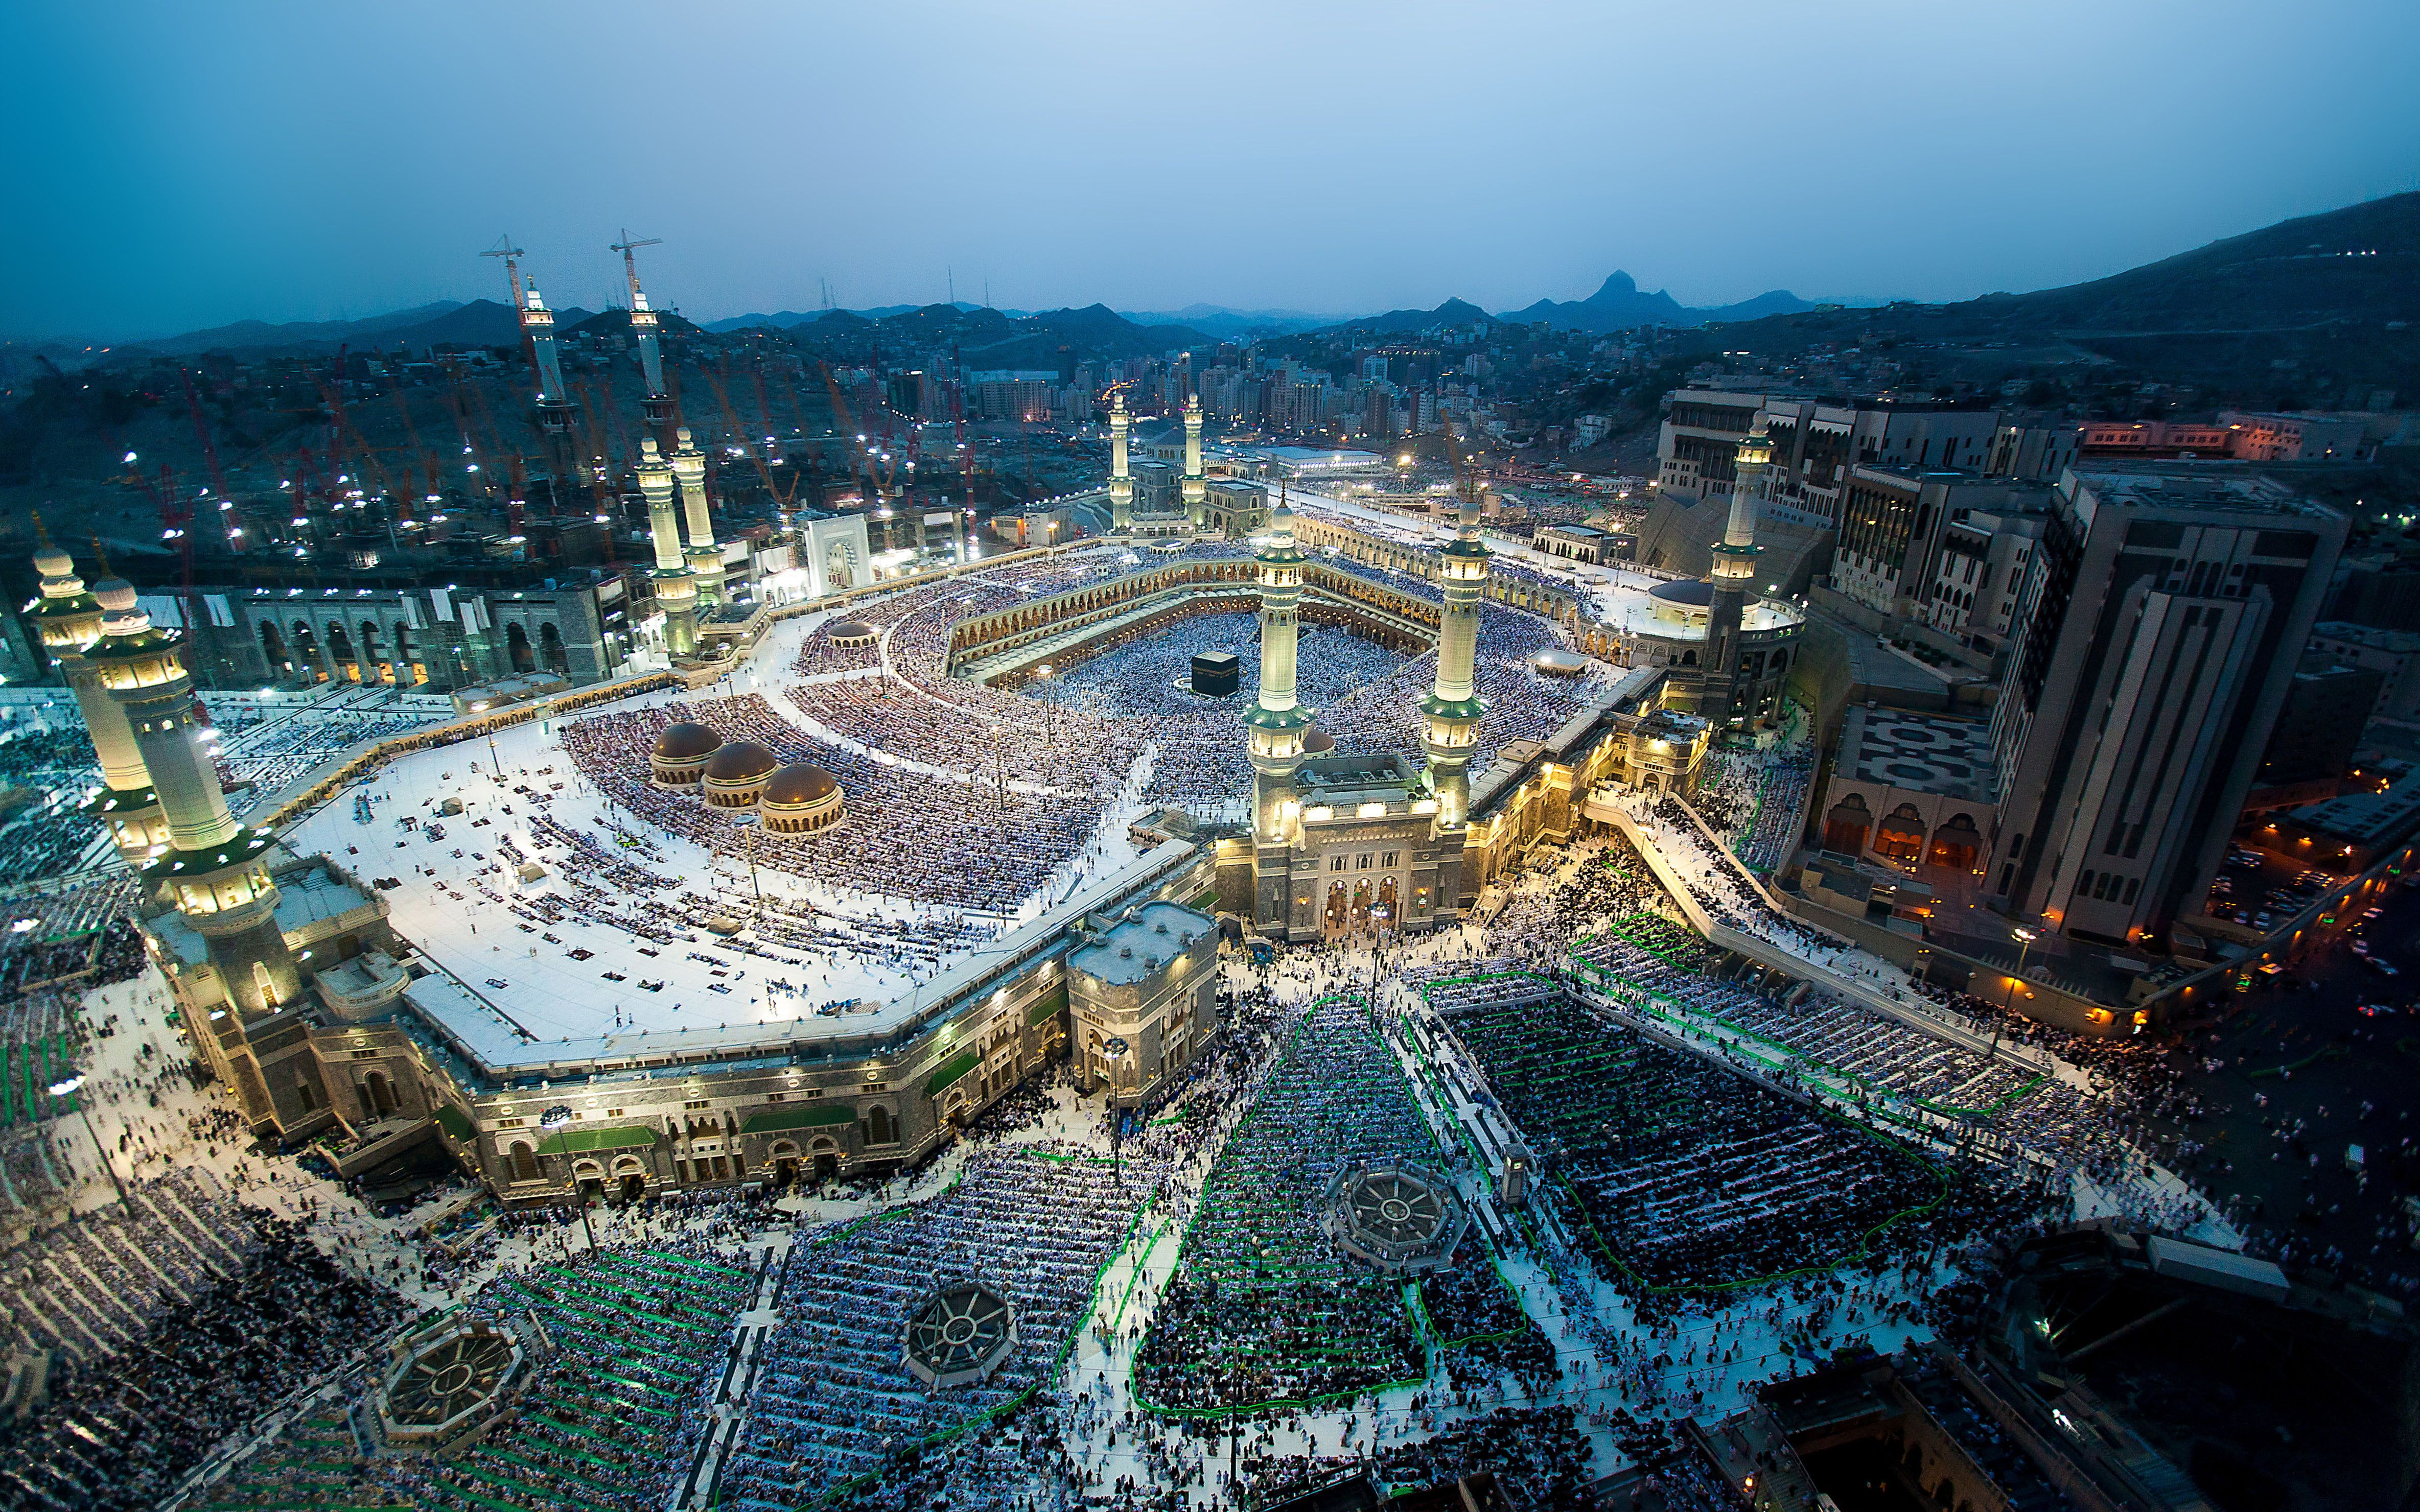 Masjid Al Haram Or Holy Mosque Great Mosque In Mecca Is The